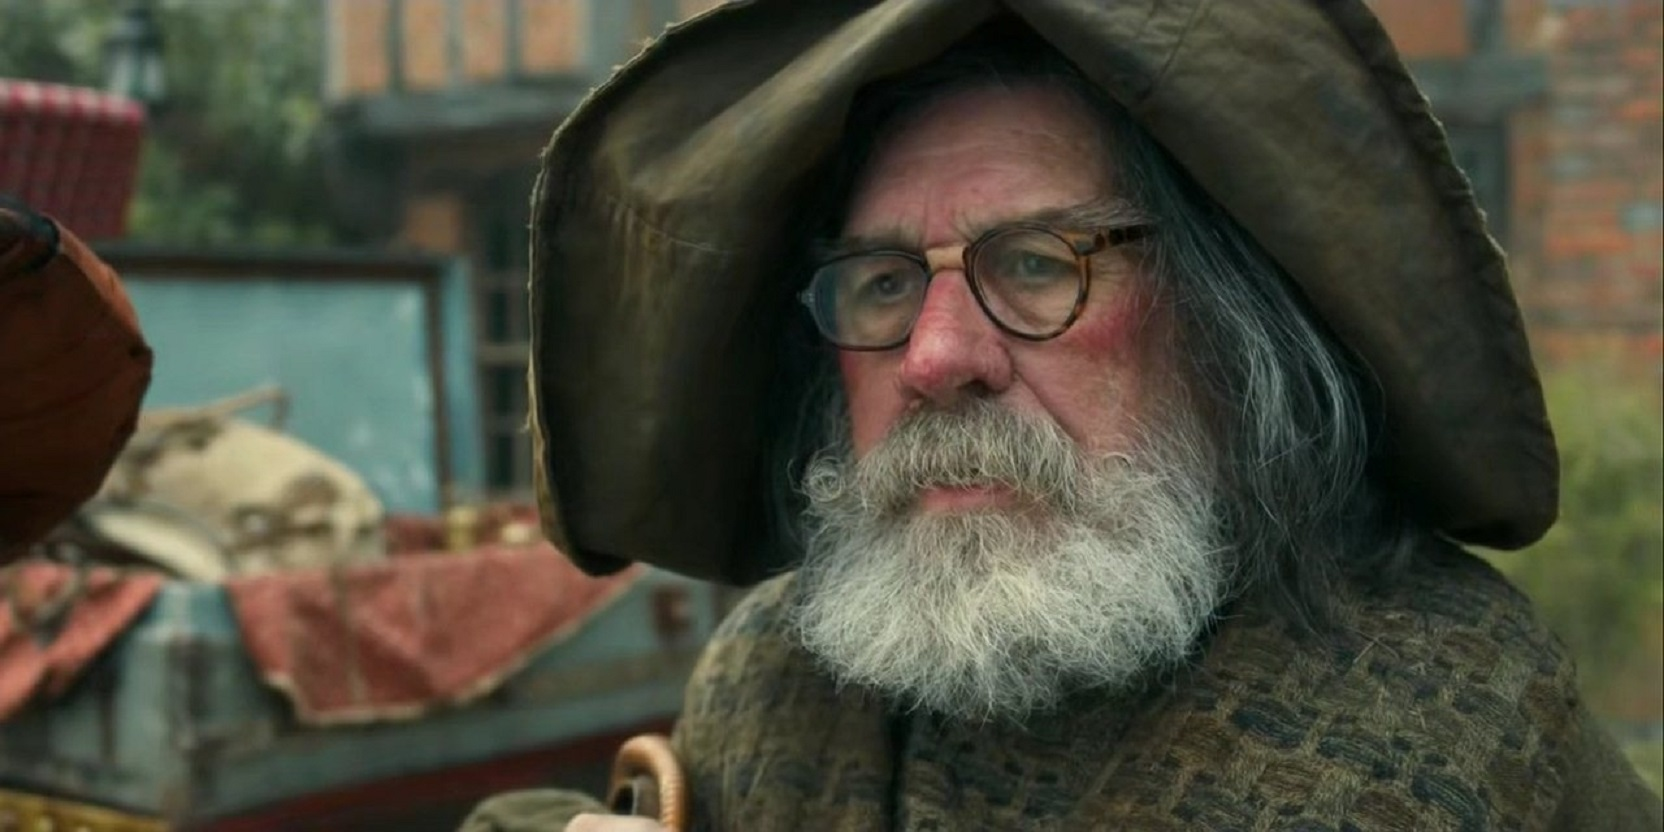 Ricky Tomlinson as the wizard Moobin in The Last Dragonslayer (2016)